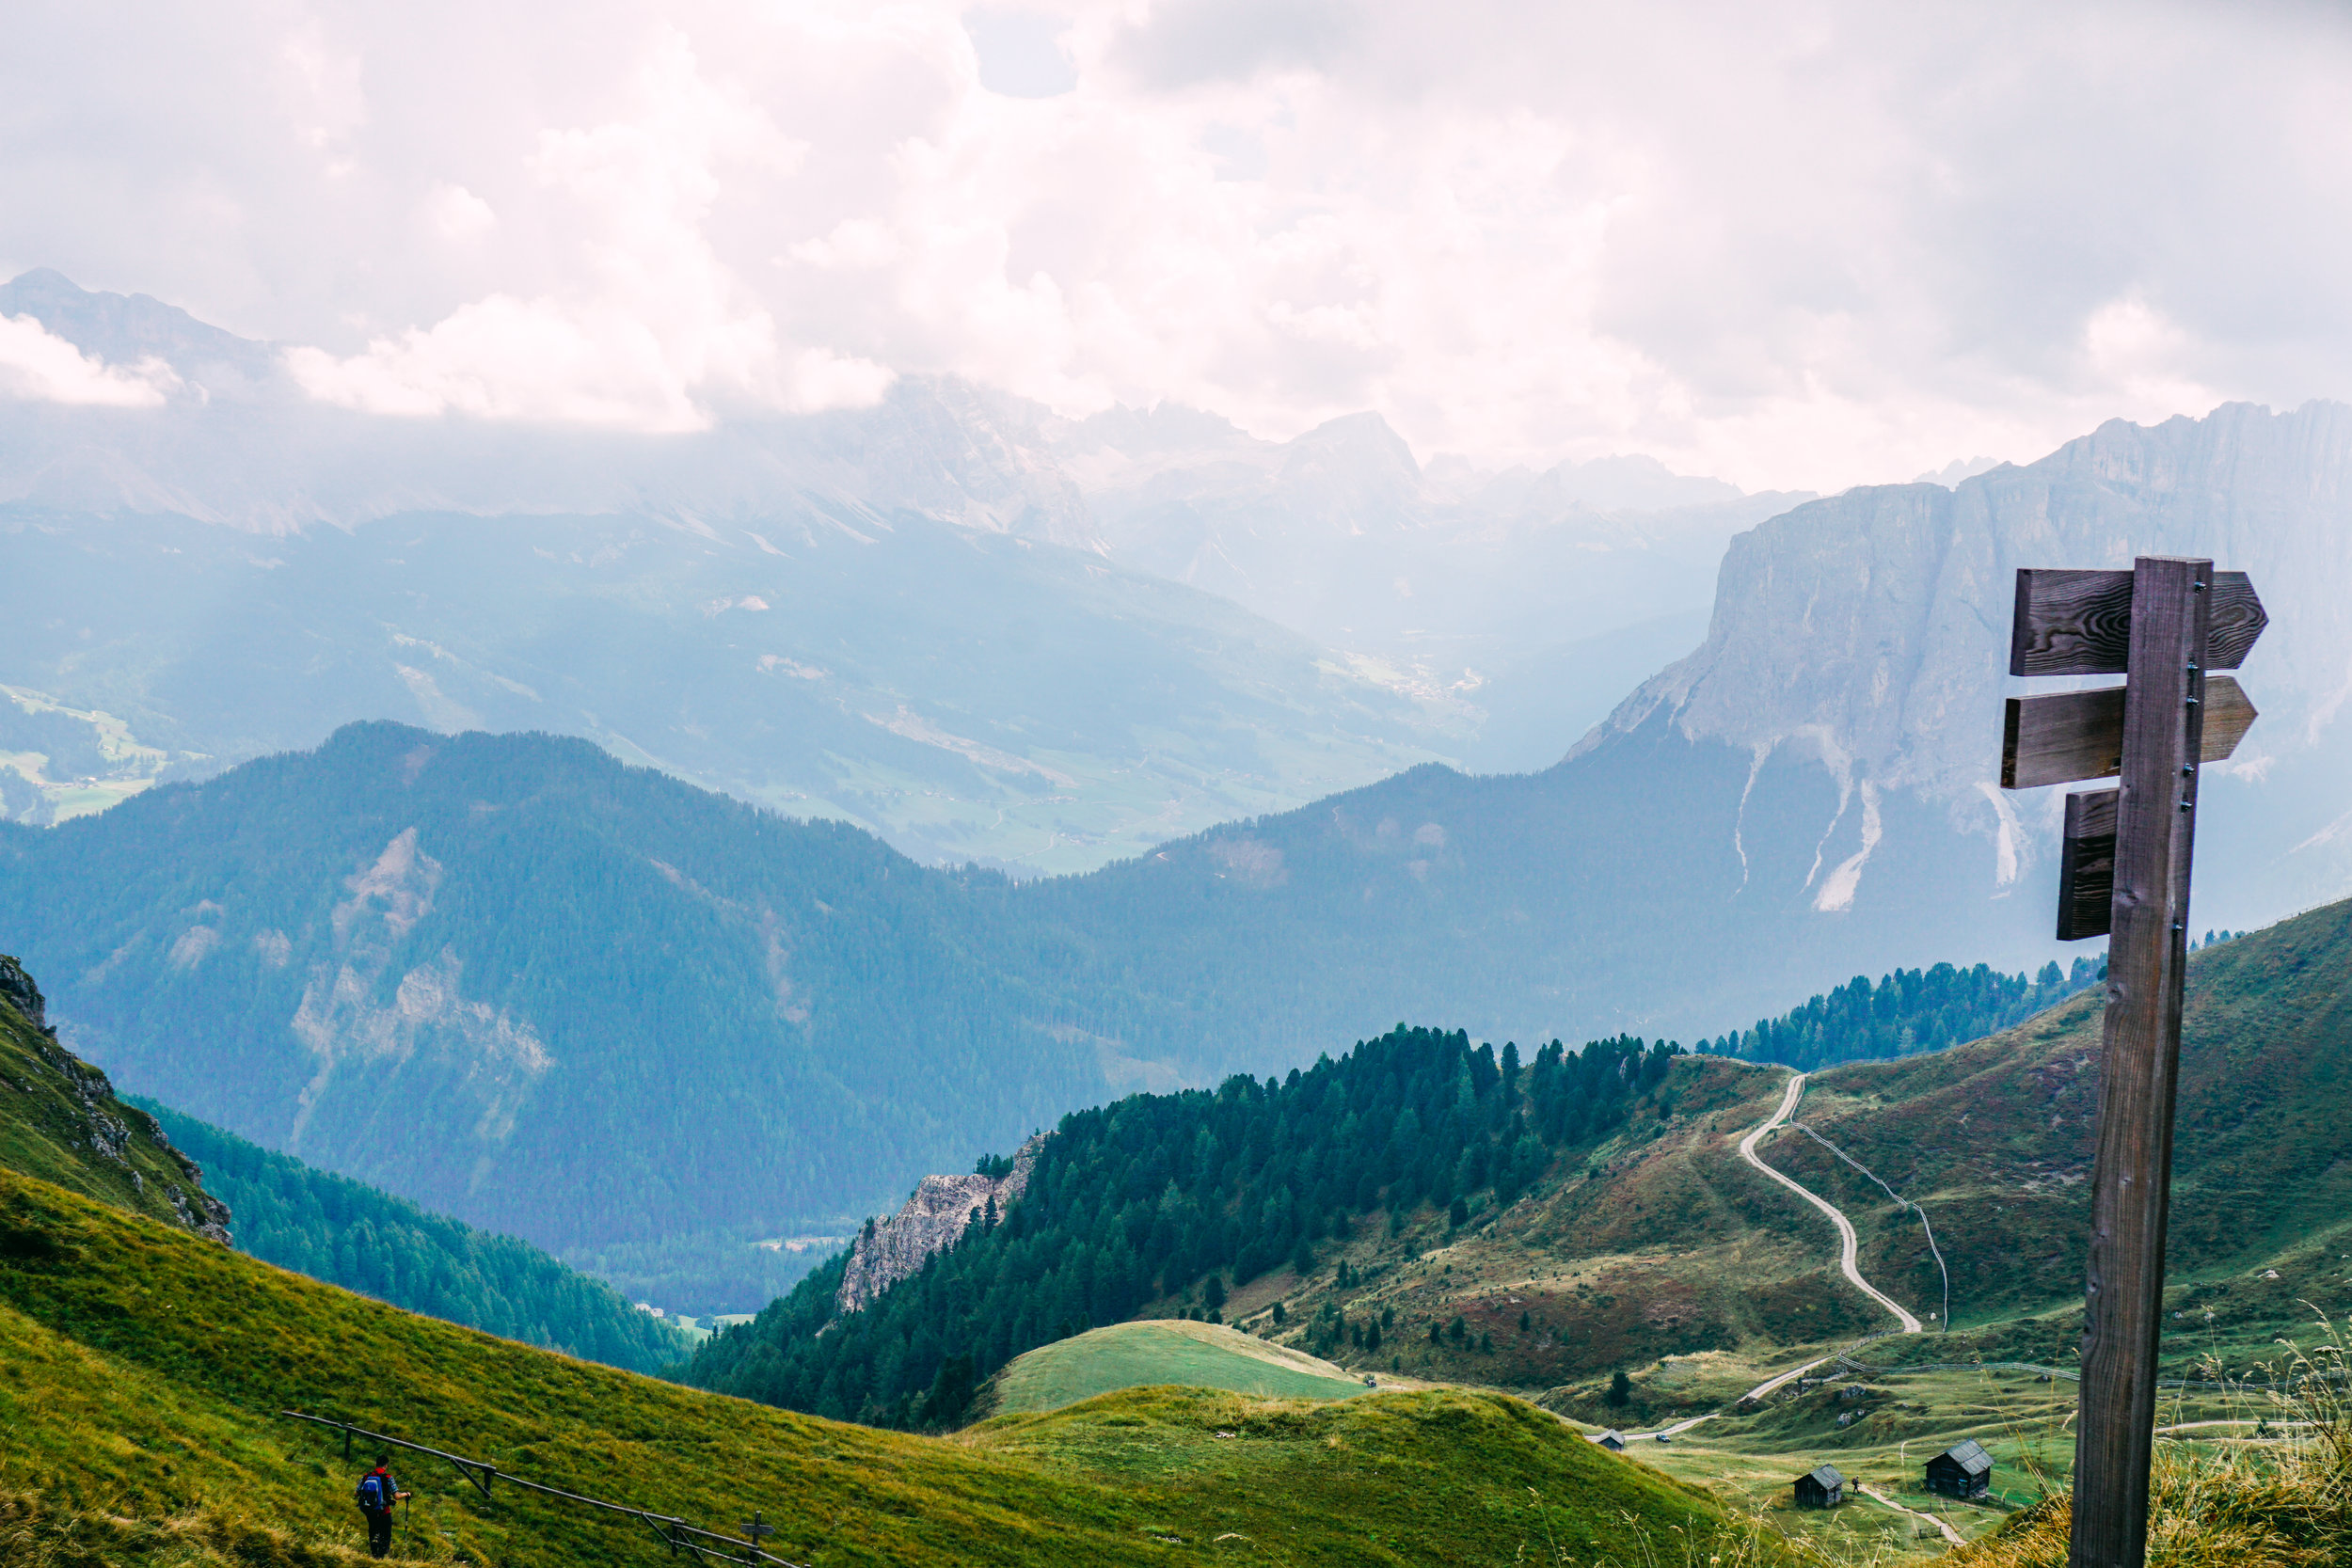 alps-elevated-159.jpg